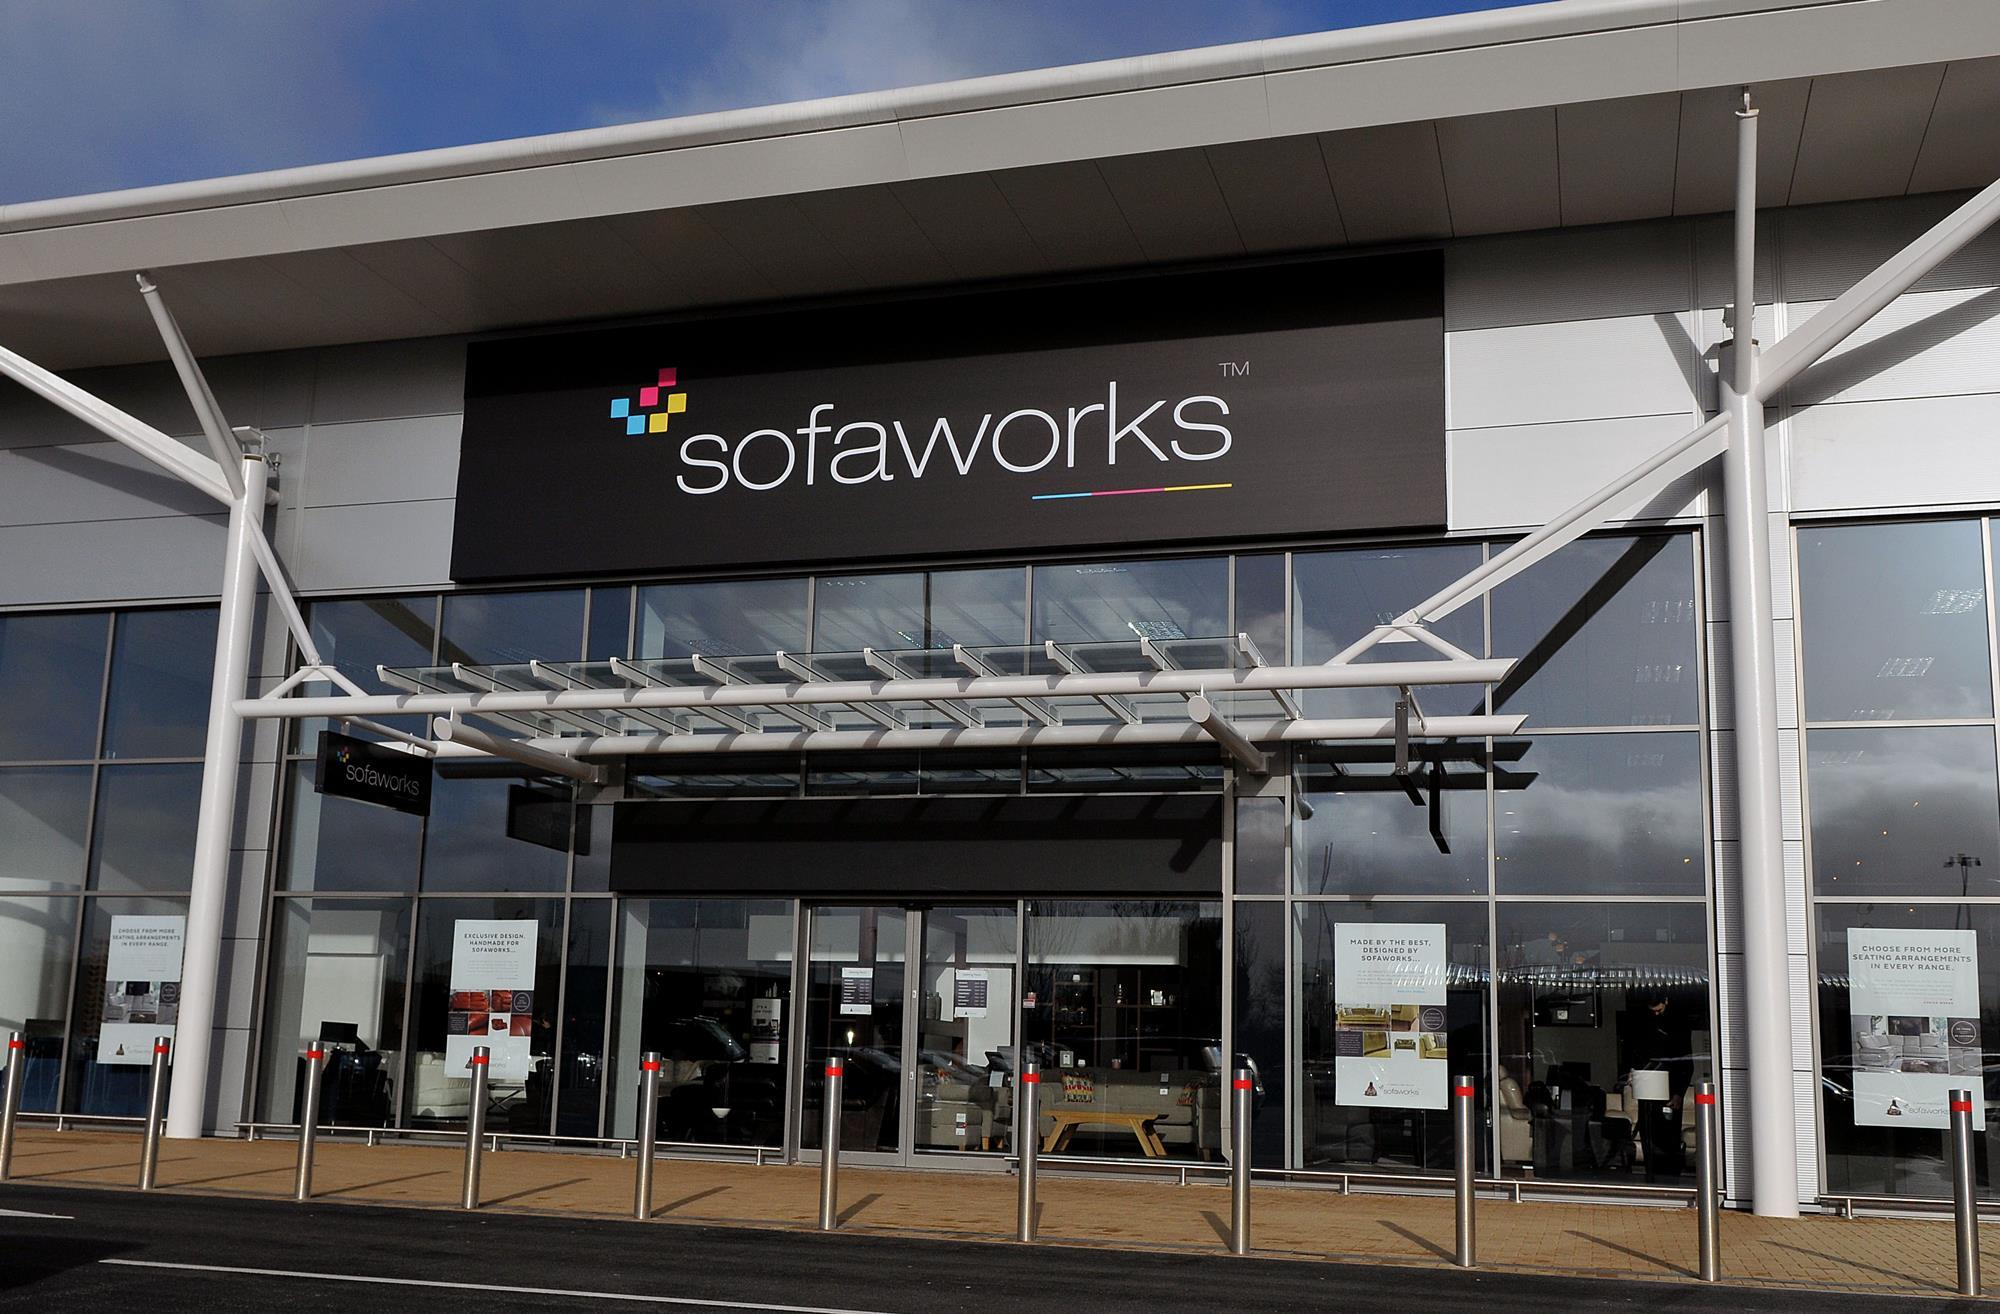 DFS sues rival furniture retailer Sofaworks over brand